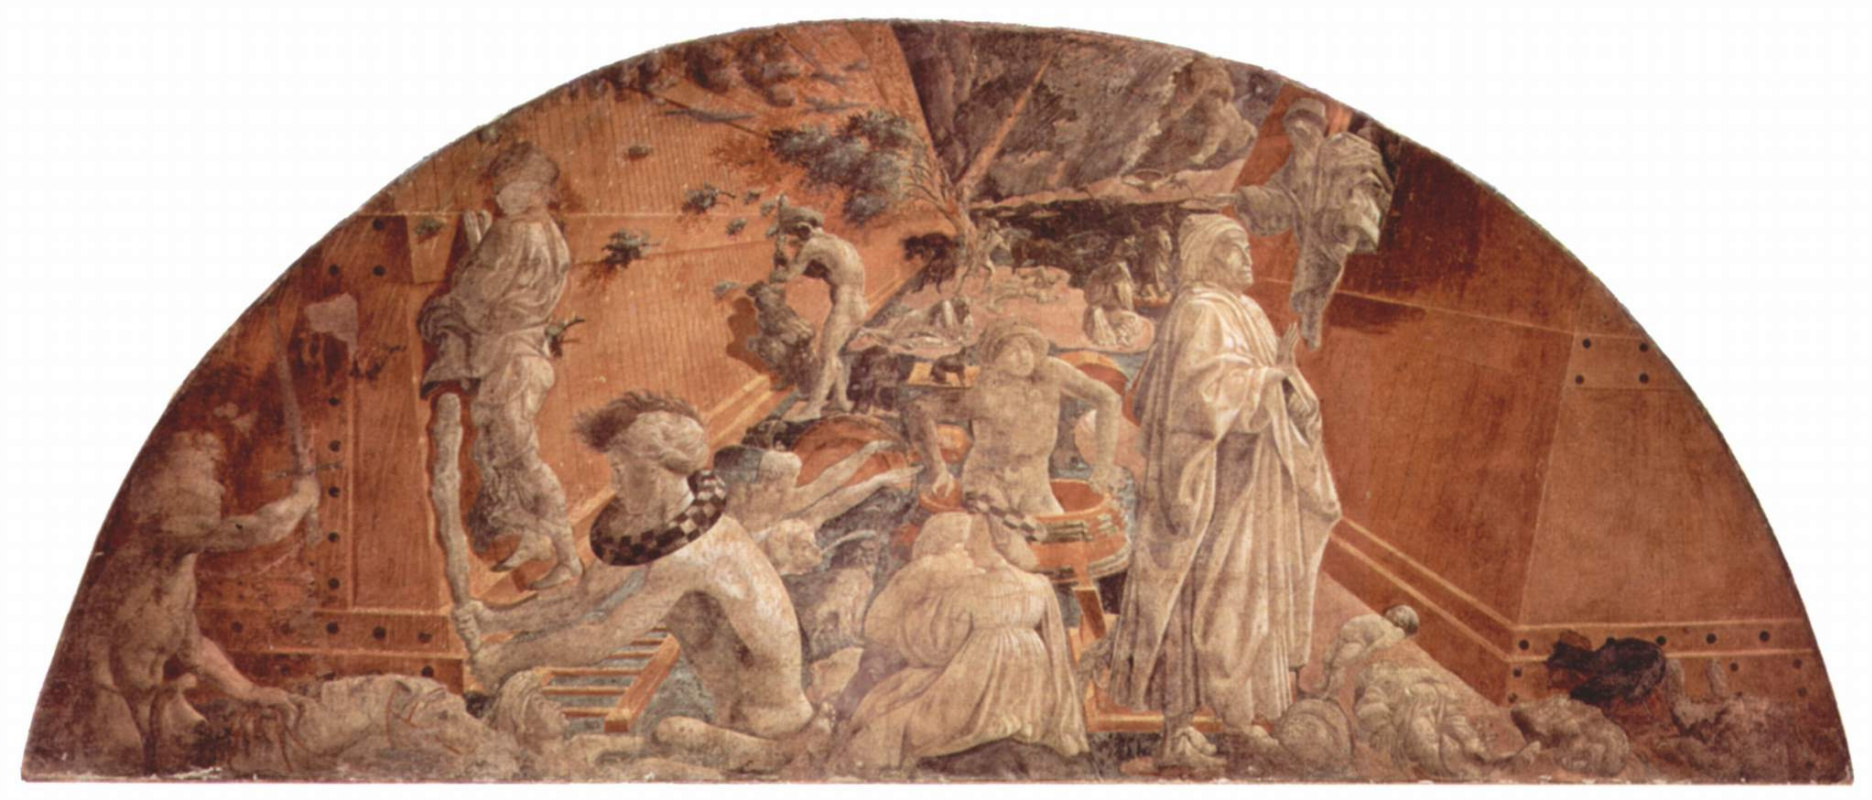 Paolo Uccello. The cycle of frescoes on the theme of the old Testament in a cloister of Santa Maria Novella in Florence scene bezel: Flood and the Ark